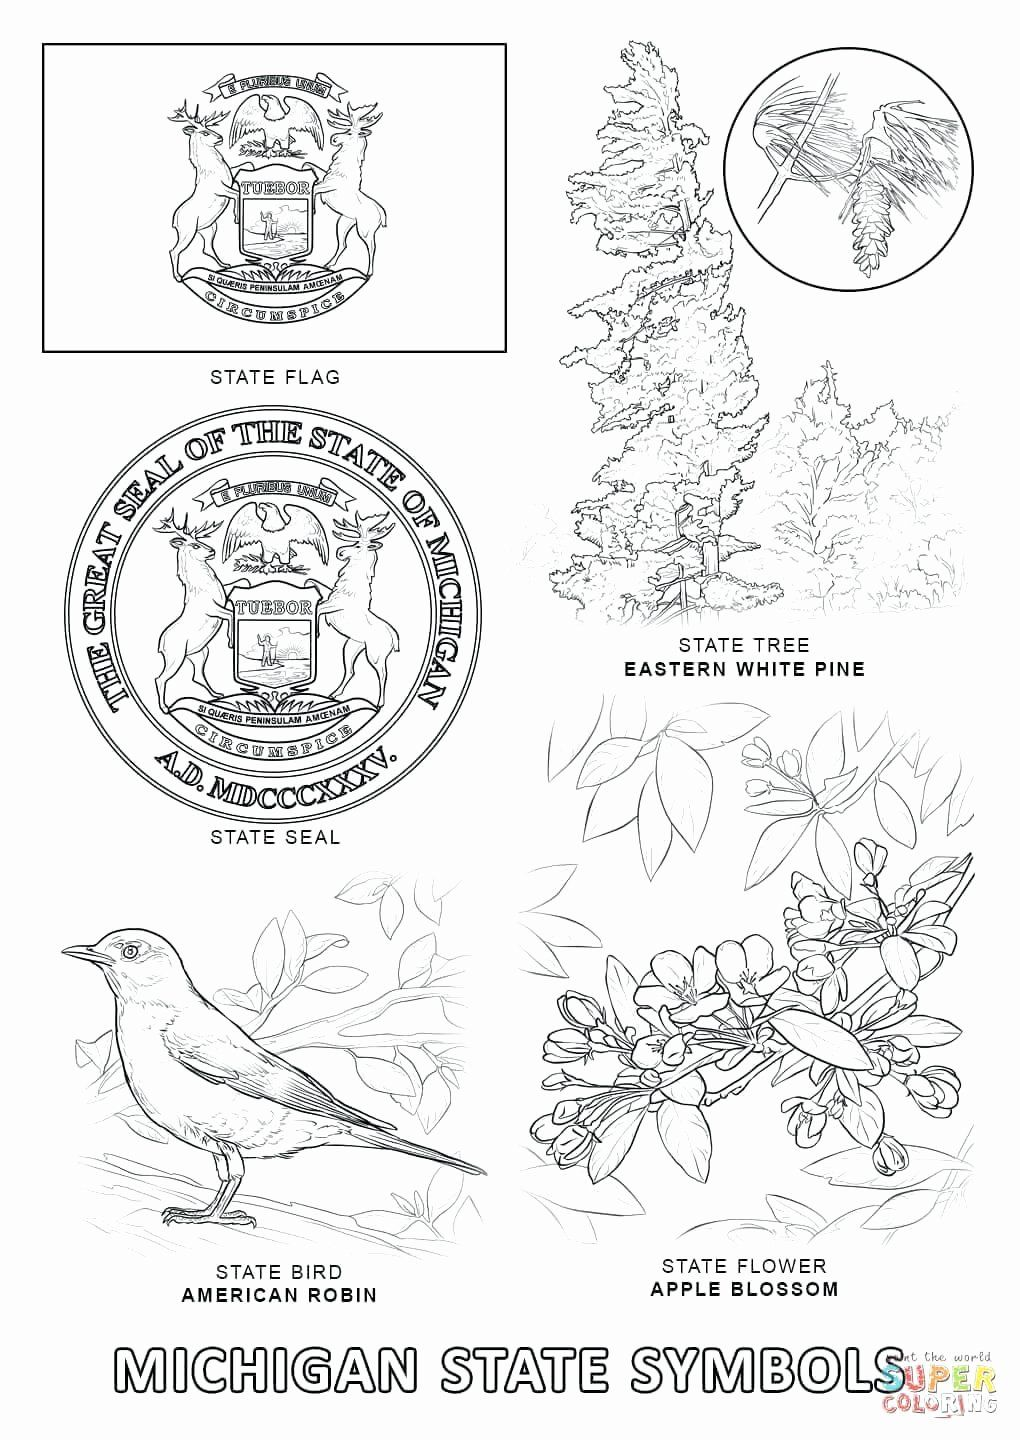 Ohio State Football Coloring Pages New North Carolina Coloring Pages Judekellyub In 2020 Flag Coloring Pages State Symbols Texas Symbols